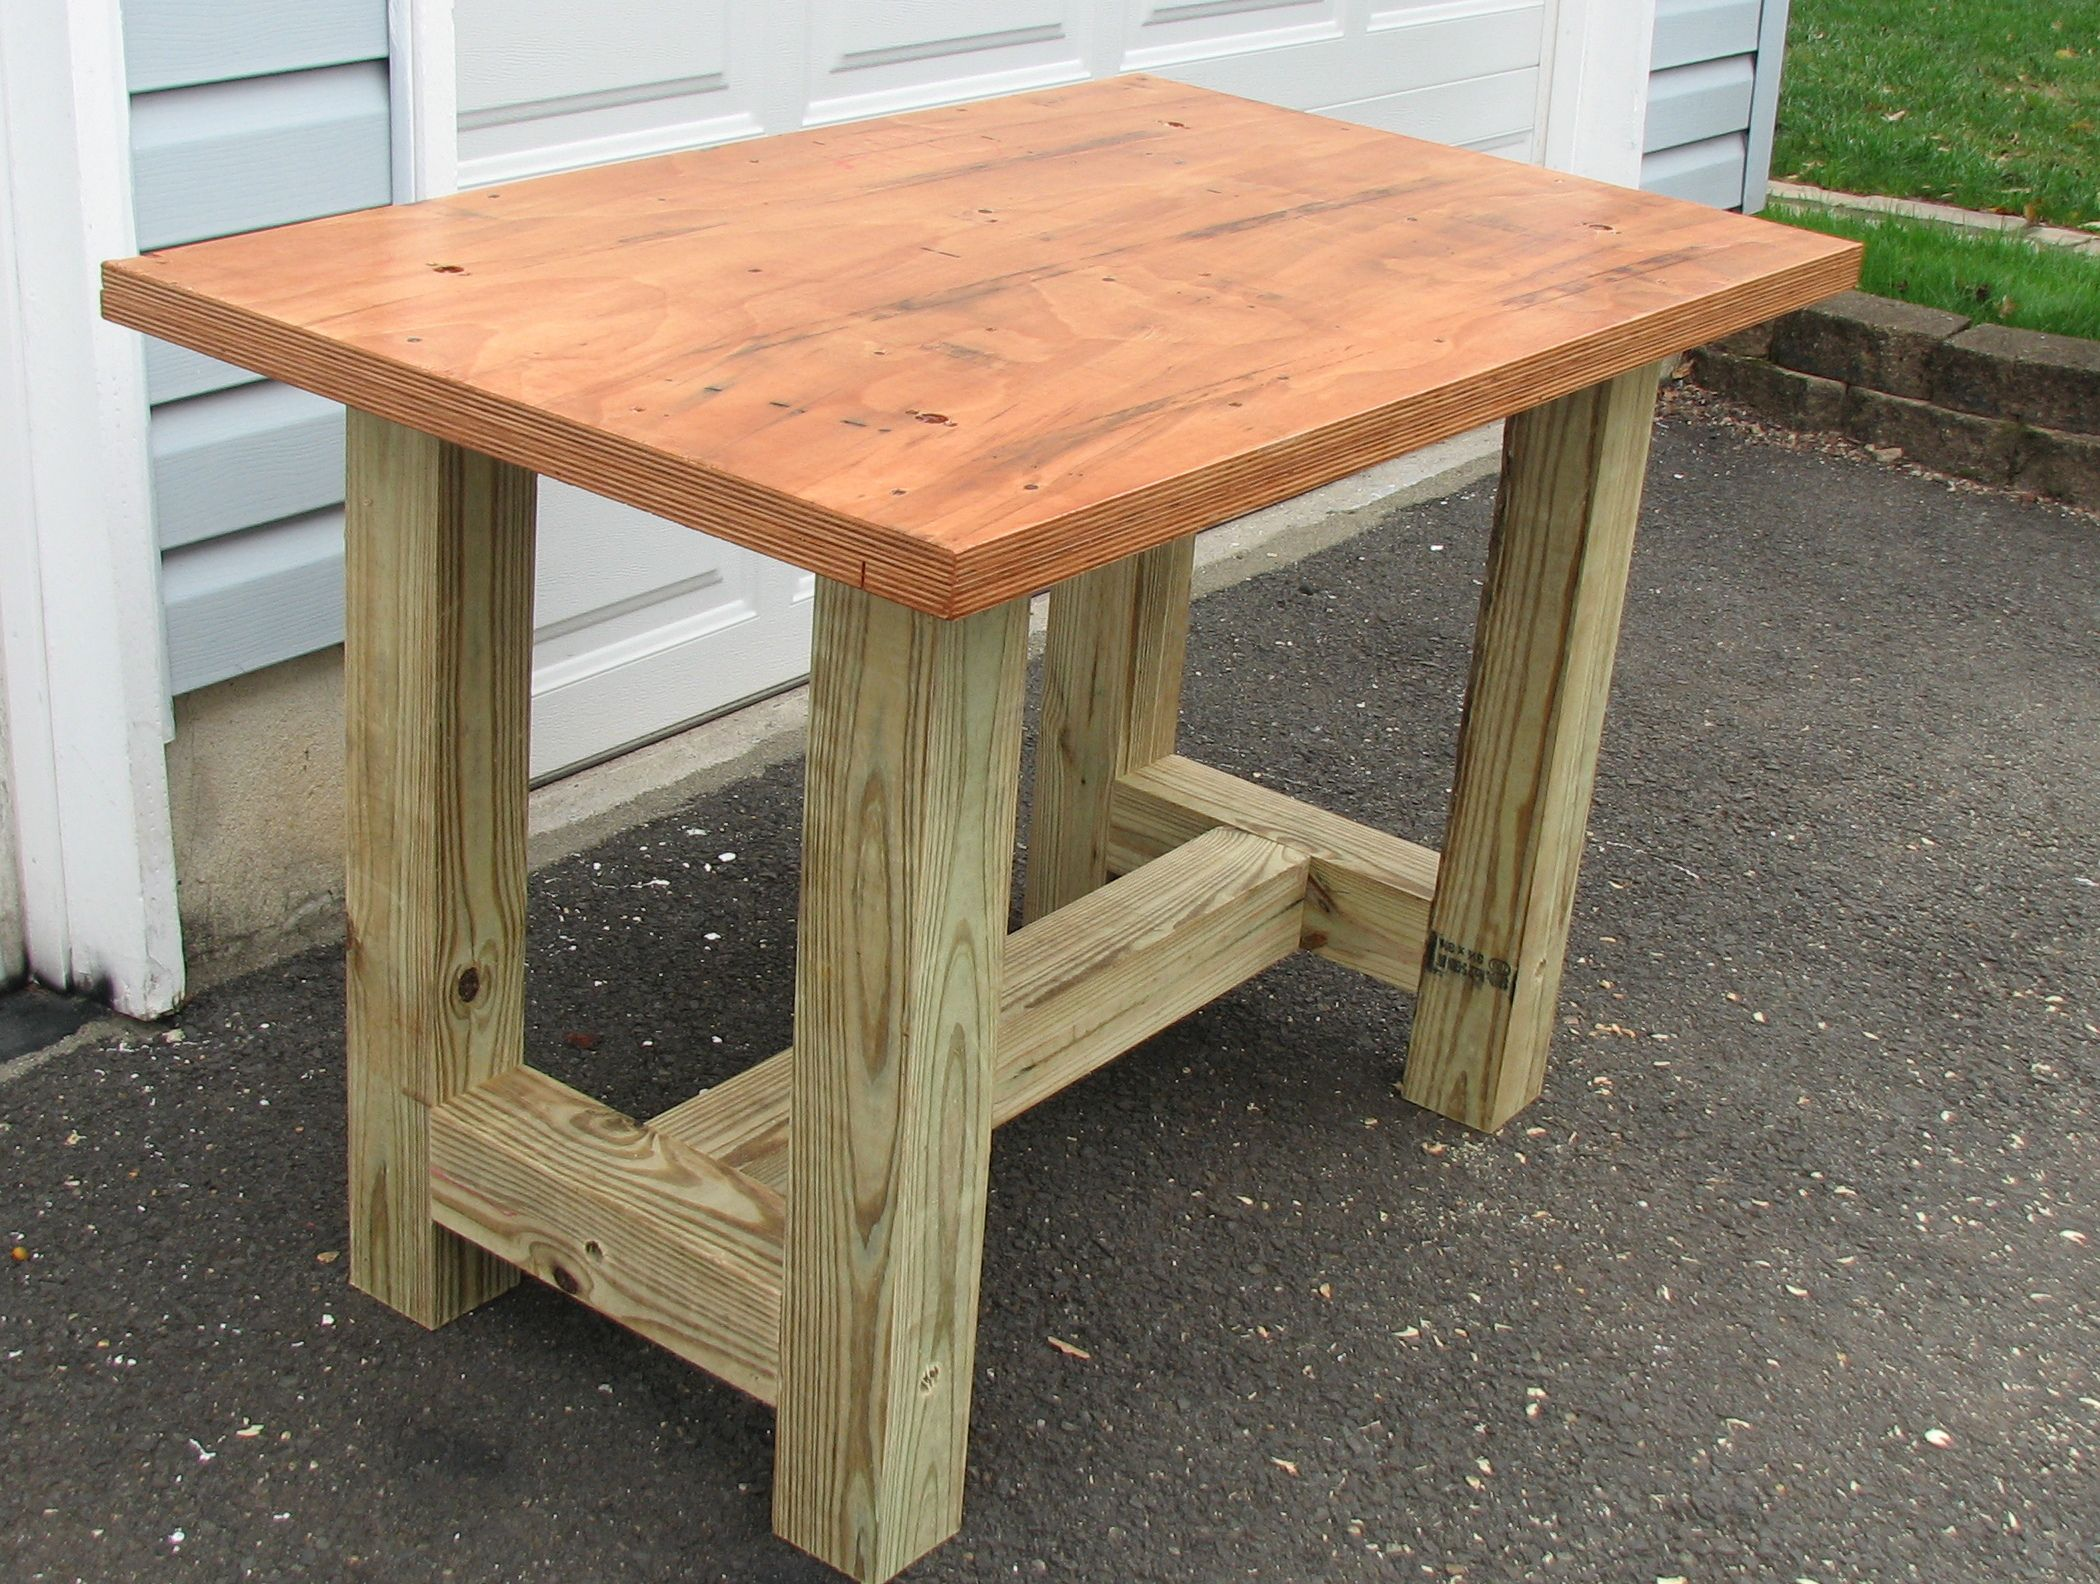 Woodworking Table Ideas Build A Beefy Work Table For Under 50 Upcycle Stuff